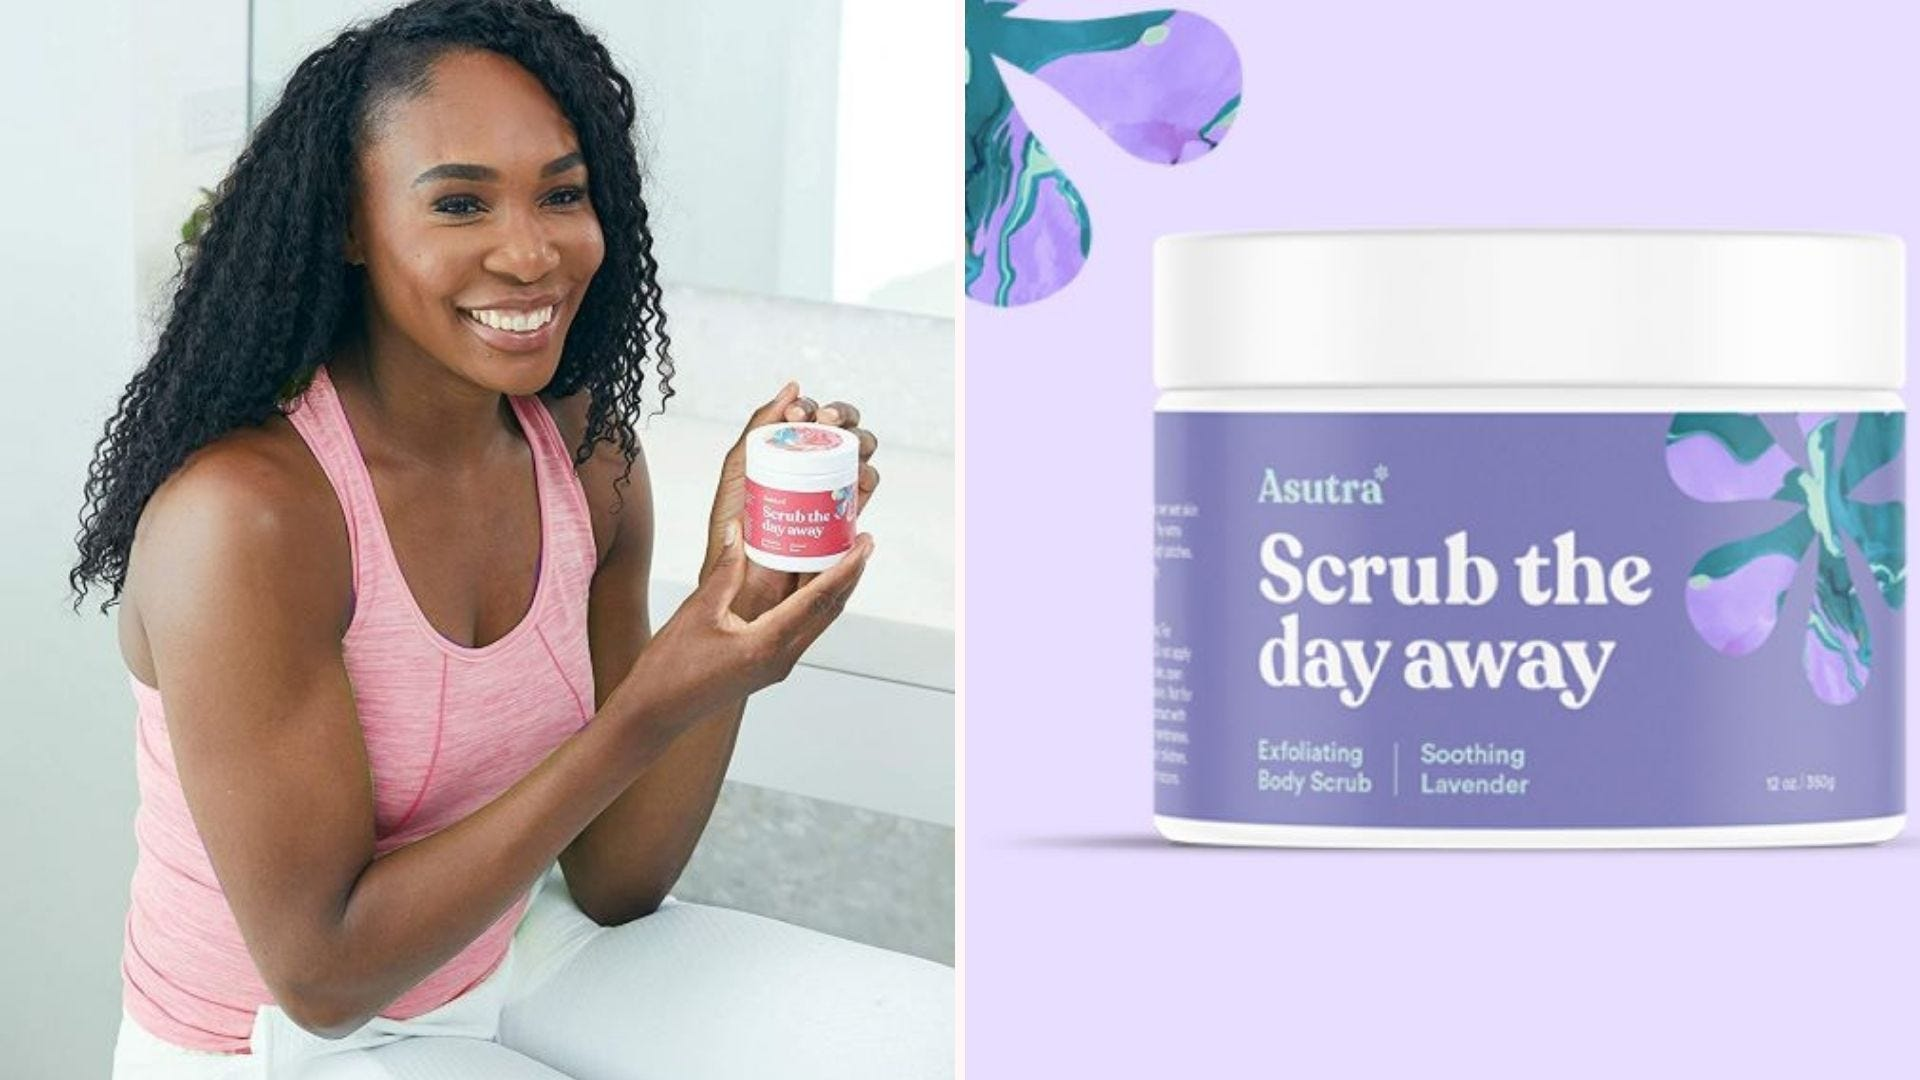 A woman holding a jar of ASUTRA Dead Sea Salt Body Scrub Exfoliator in Rose, and a jar of the Soothing Lavendar.